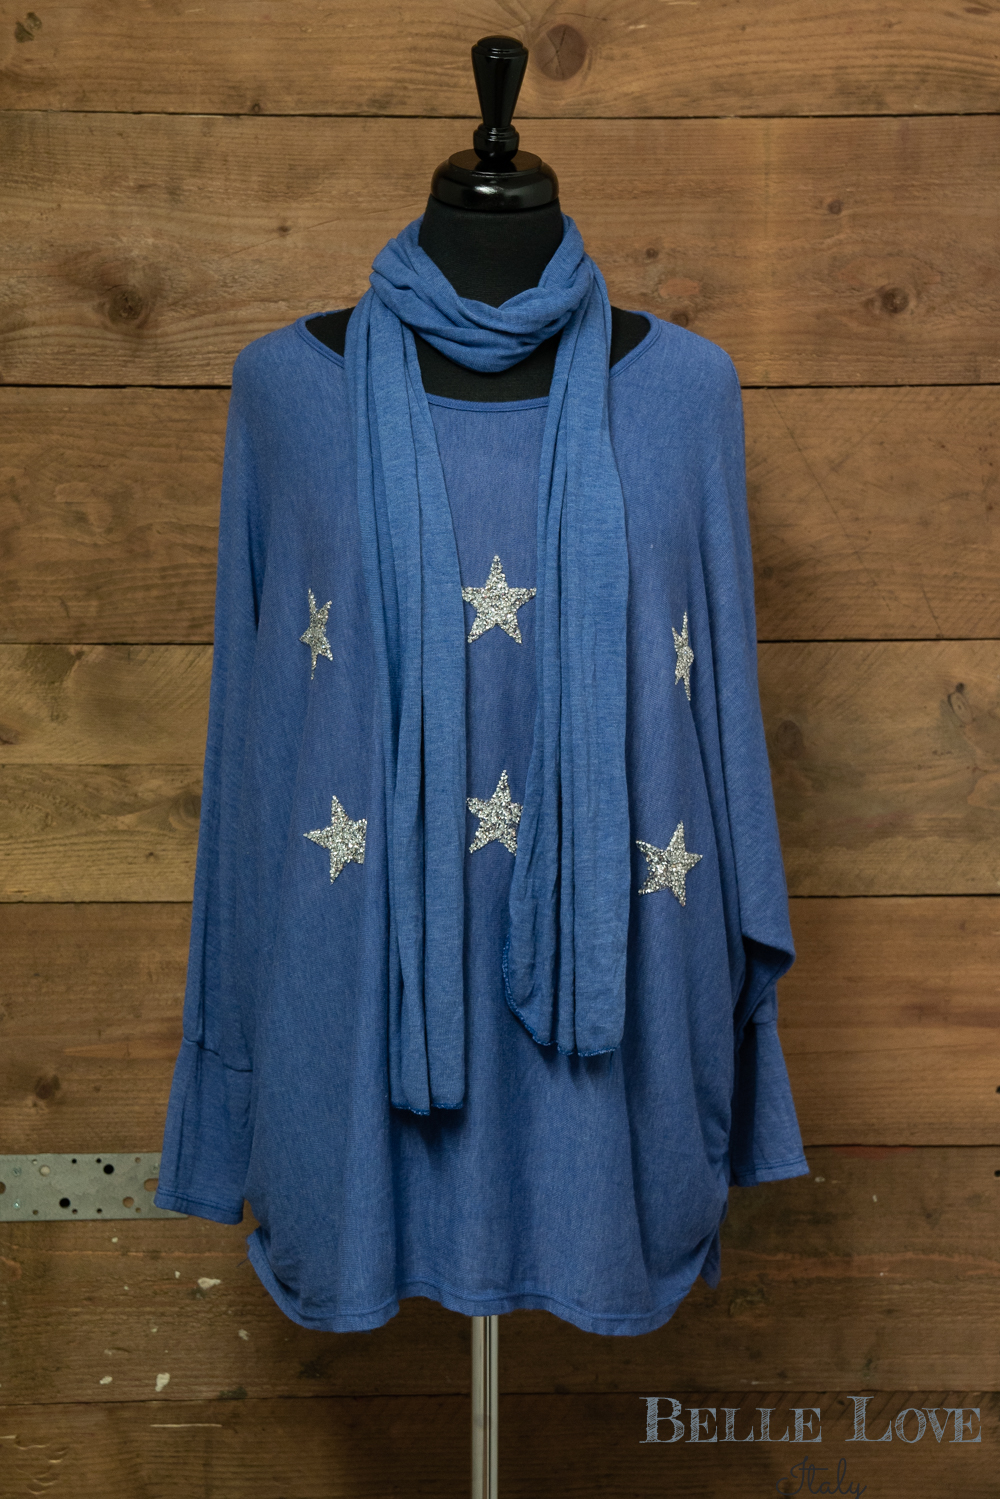 Belle Love Italy Silver Star Tunic